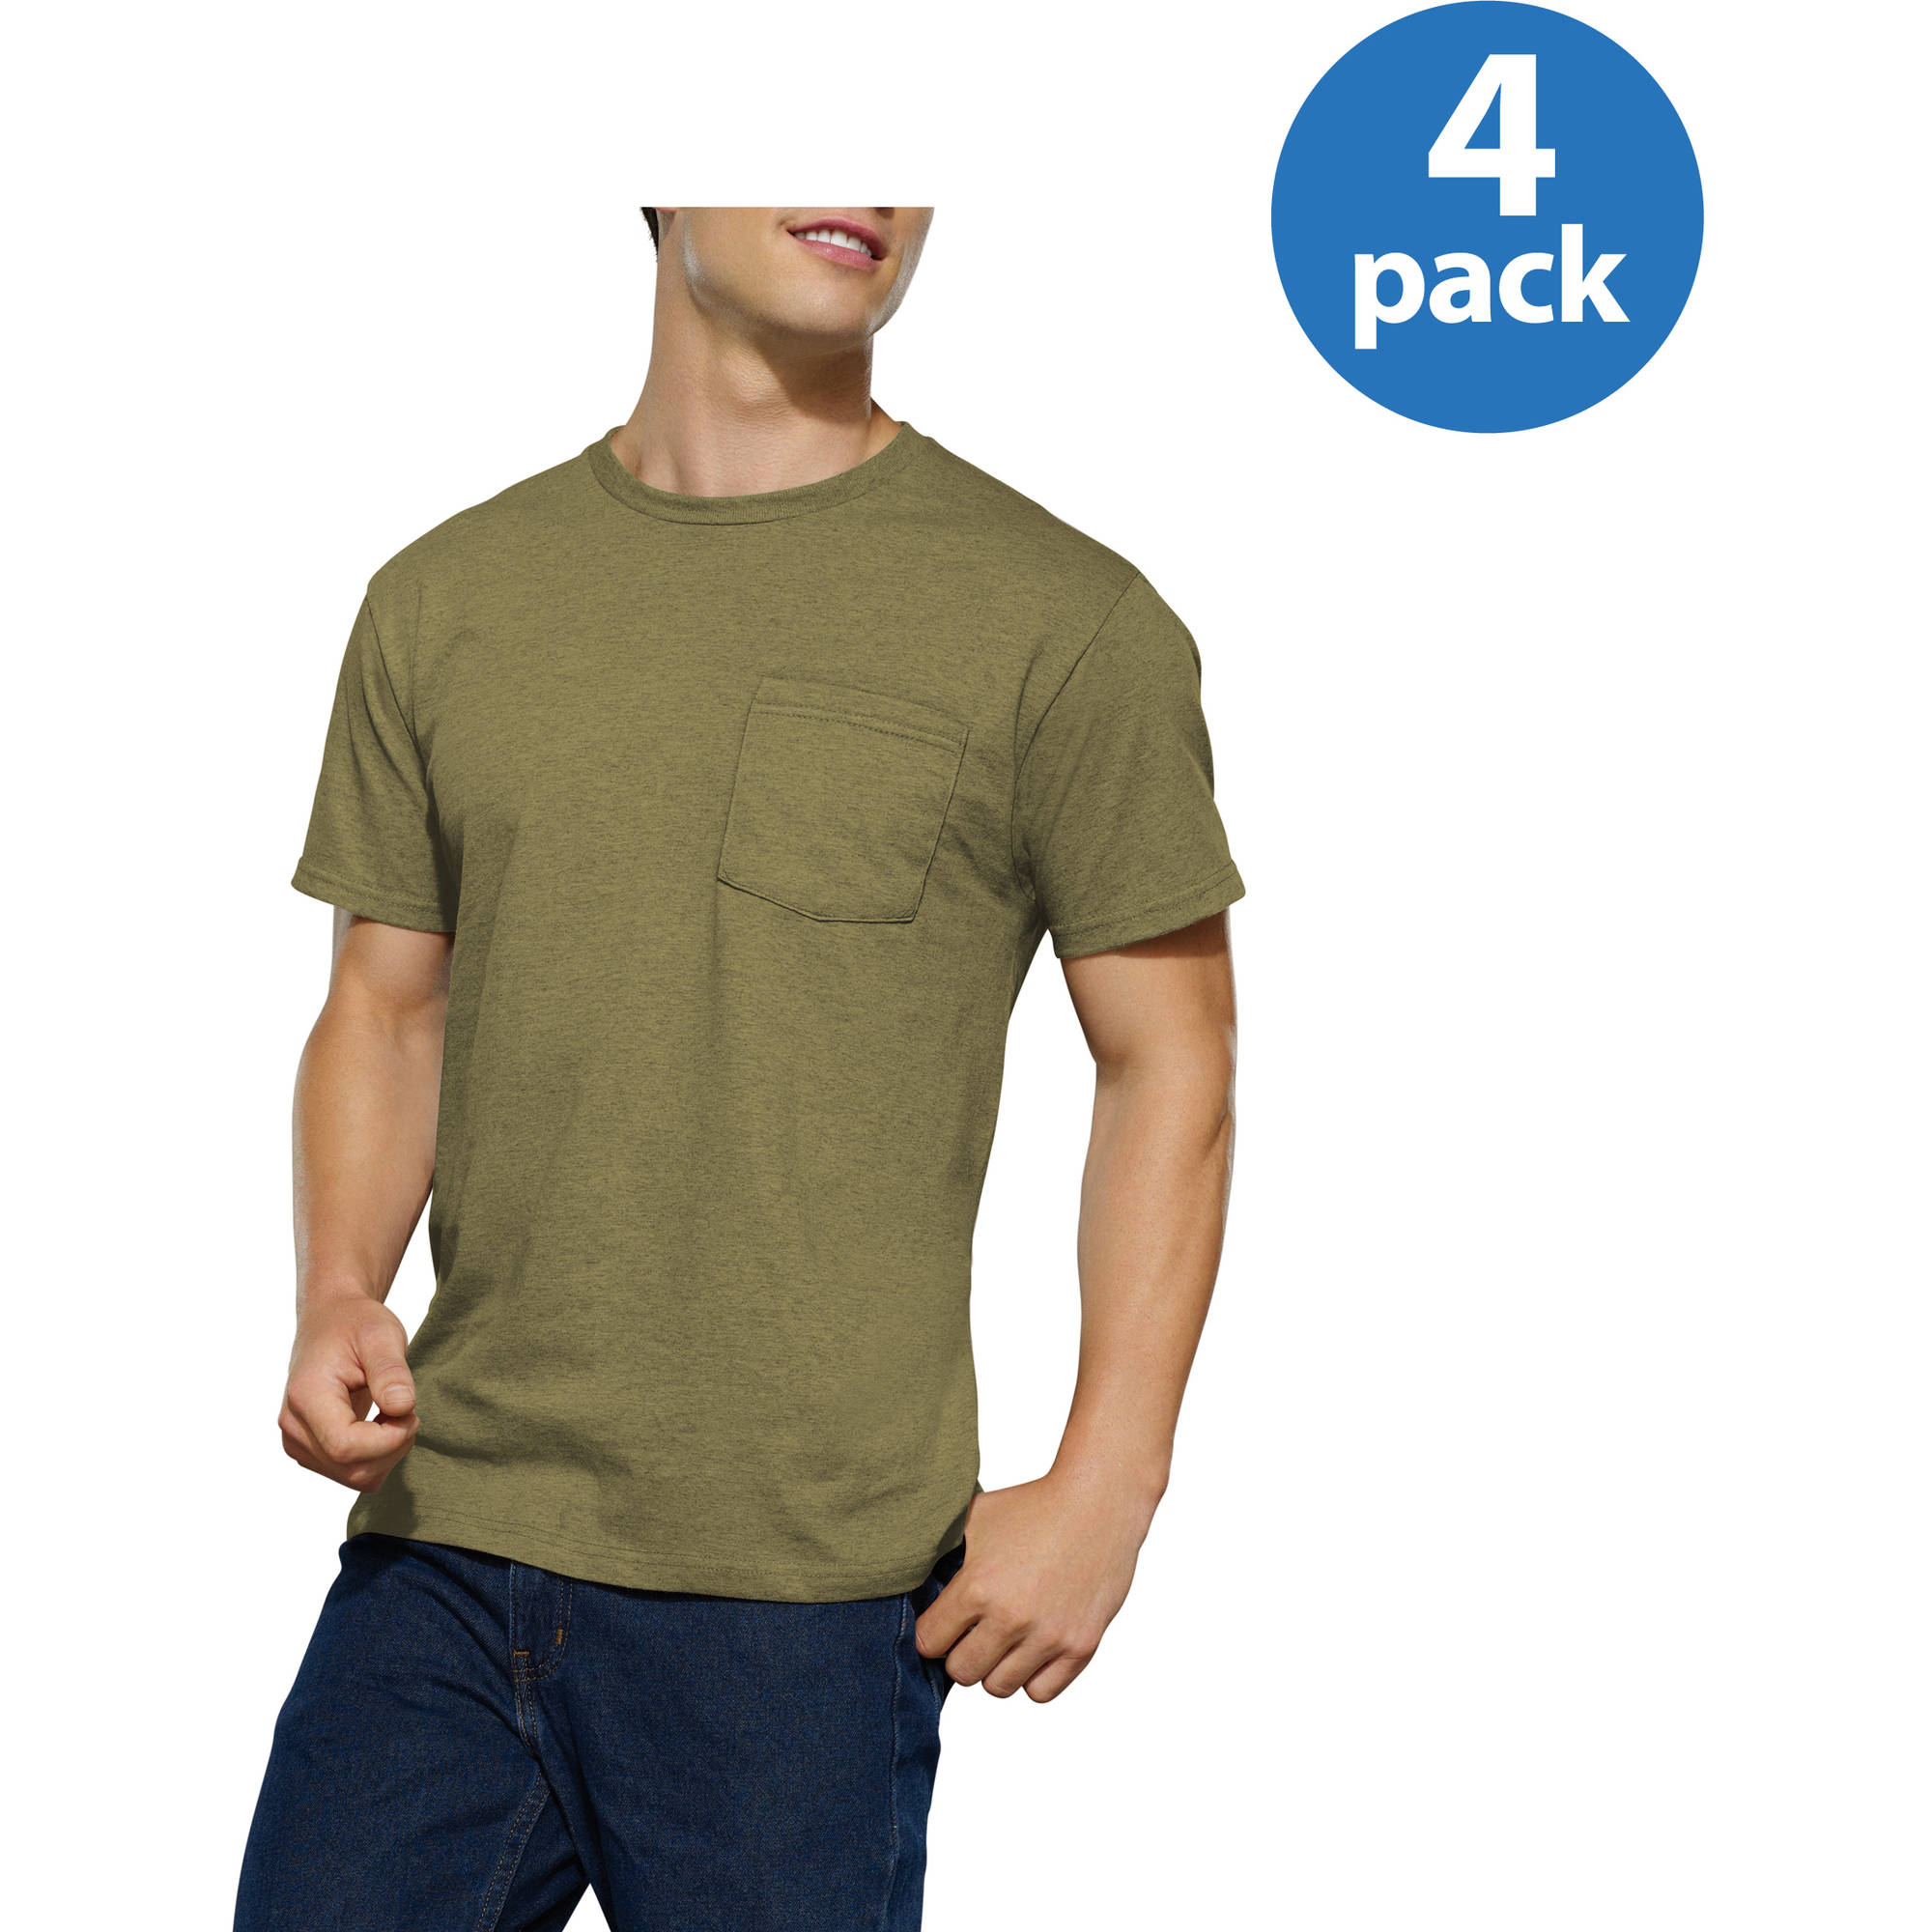 Fruit of the Loom Big Men's Assorted Pocket T-Shirt, 4-Pack